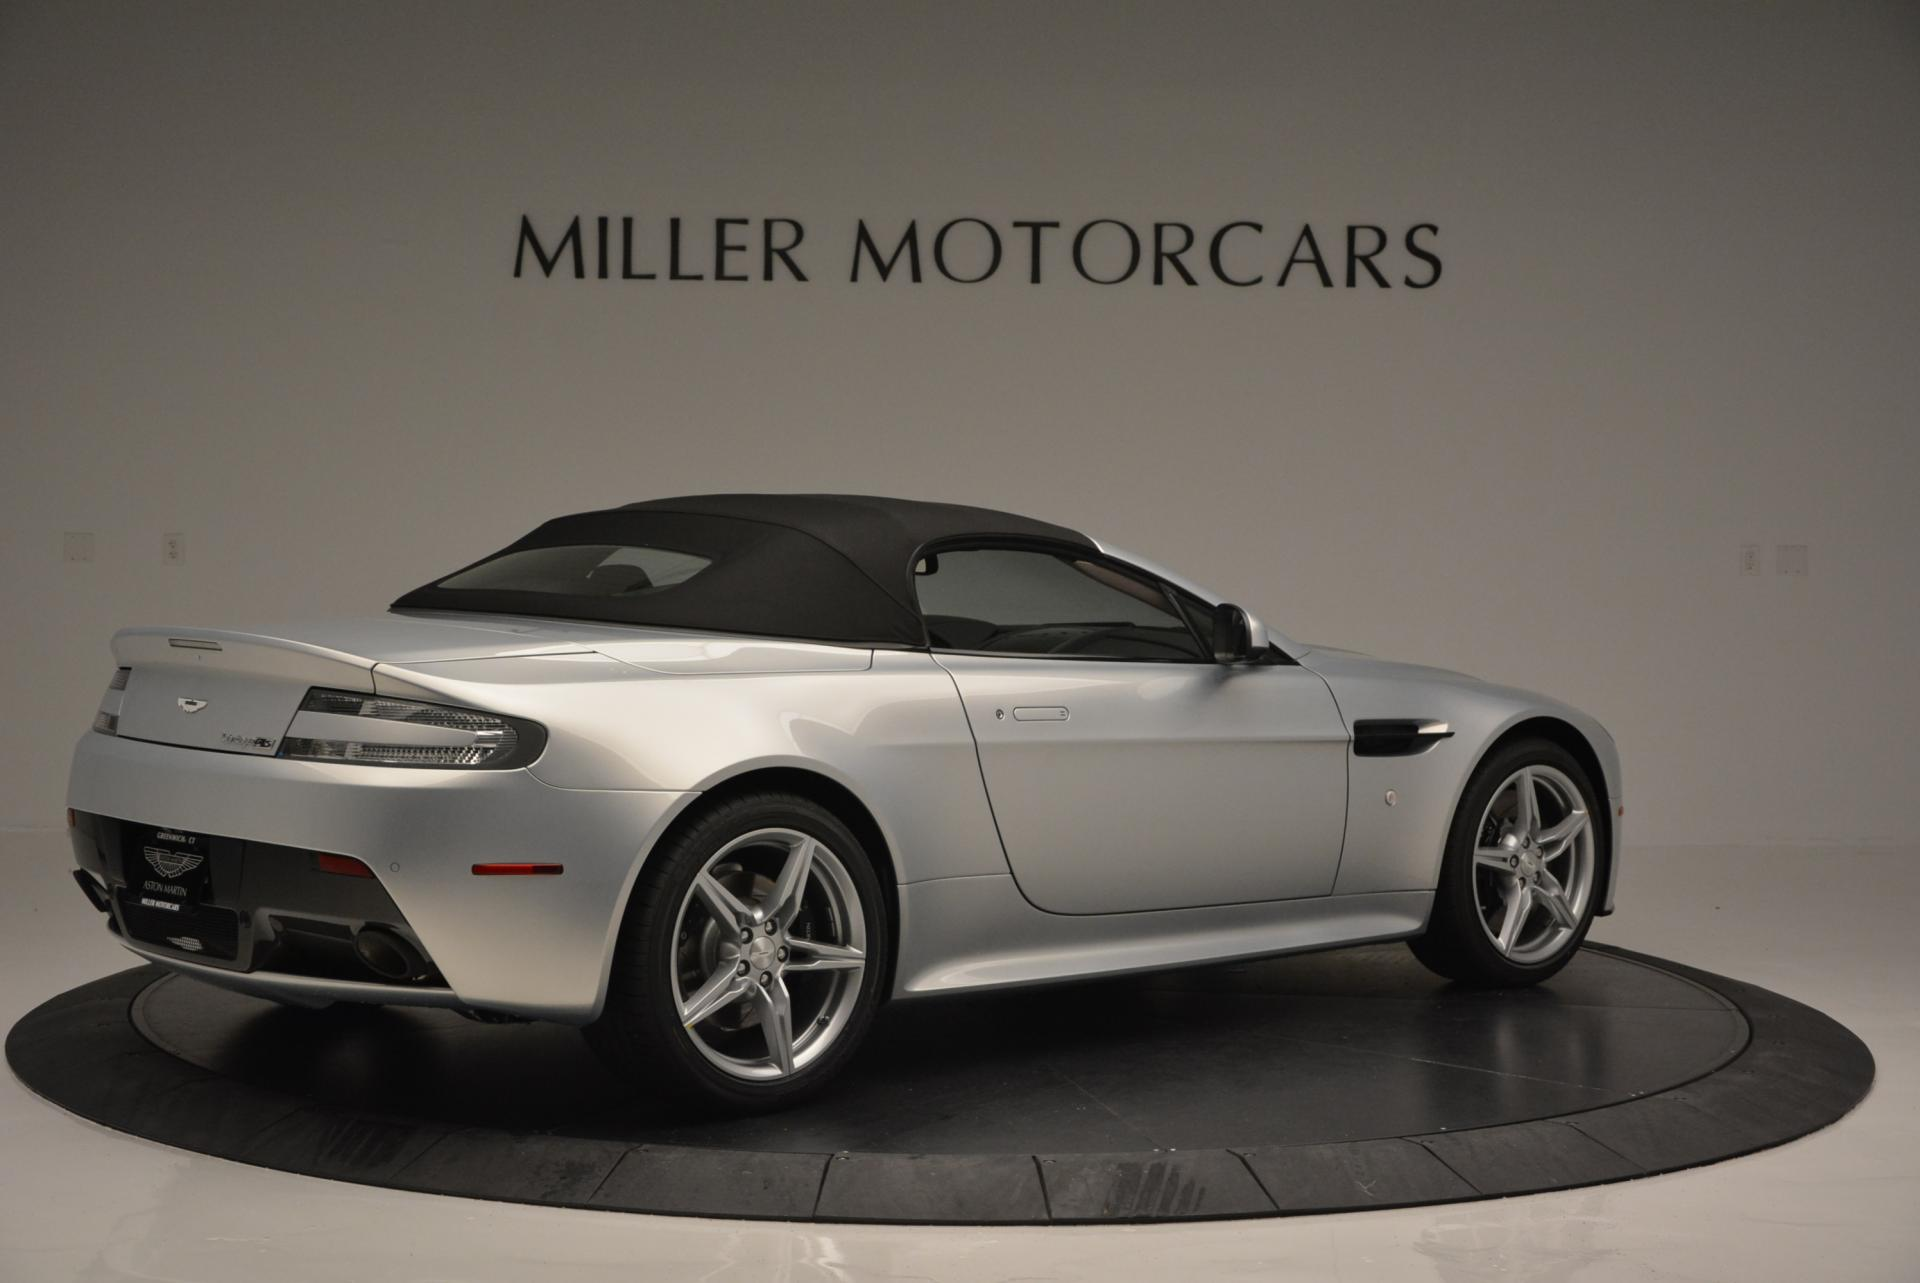 New 2016 Aston Martin V8 Vantage GTS Roadster For Sale In Westport, CT 90_p18